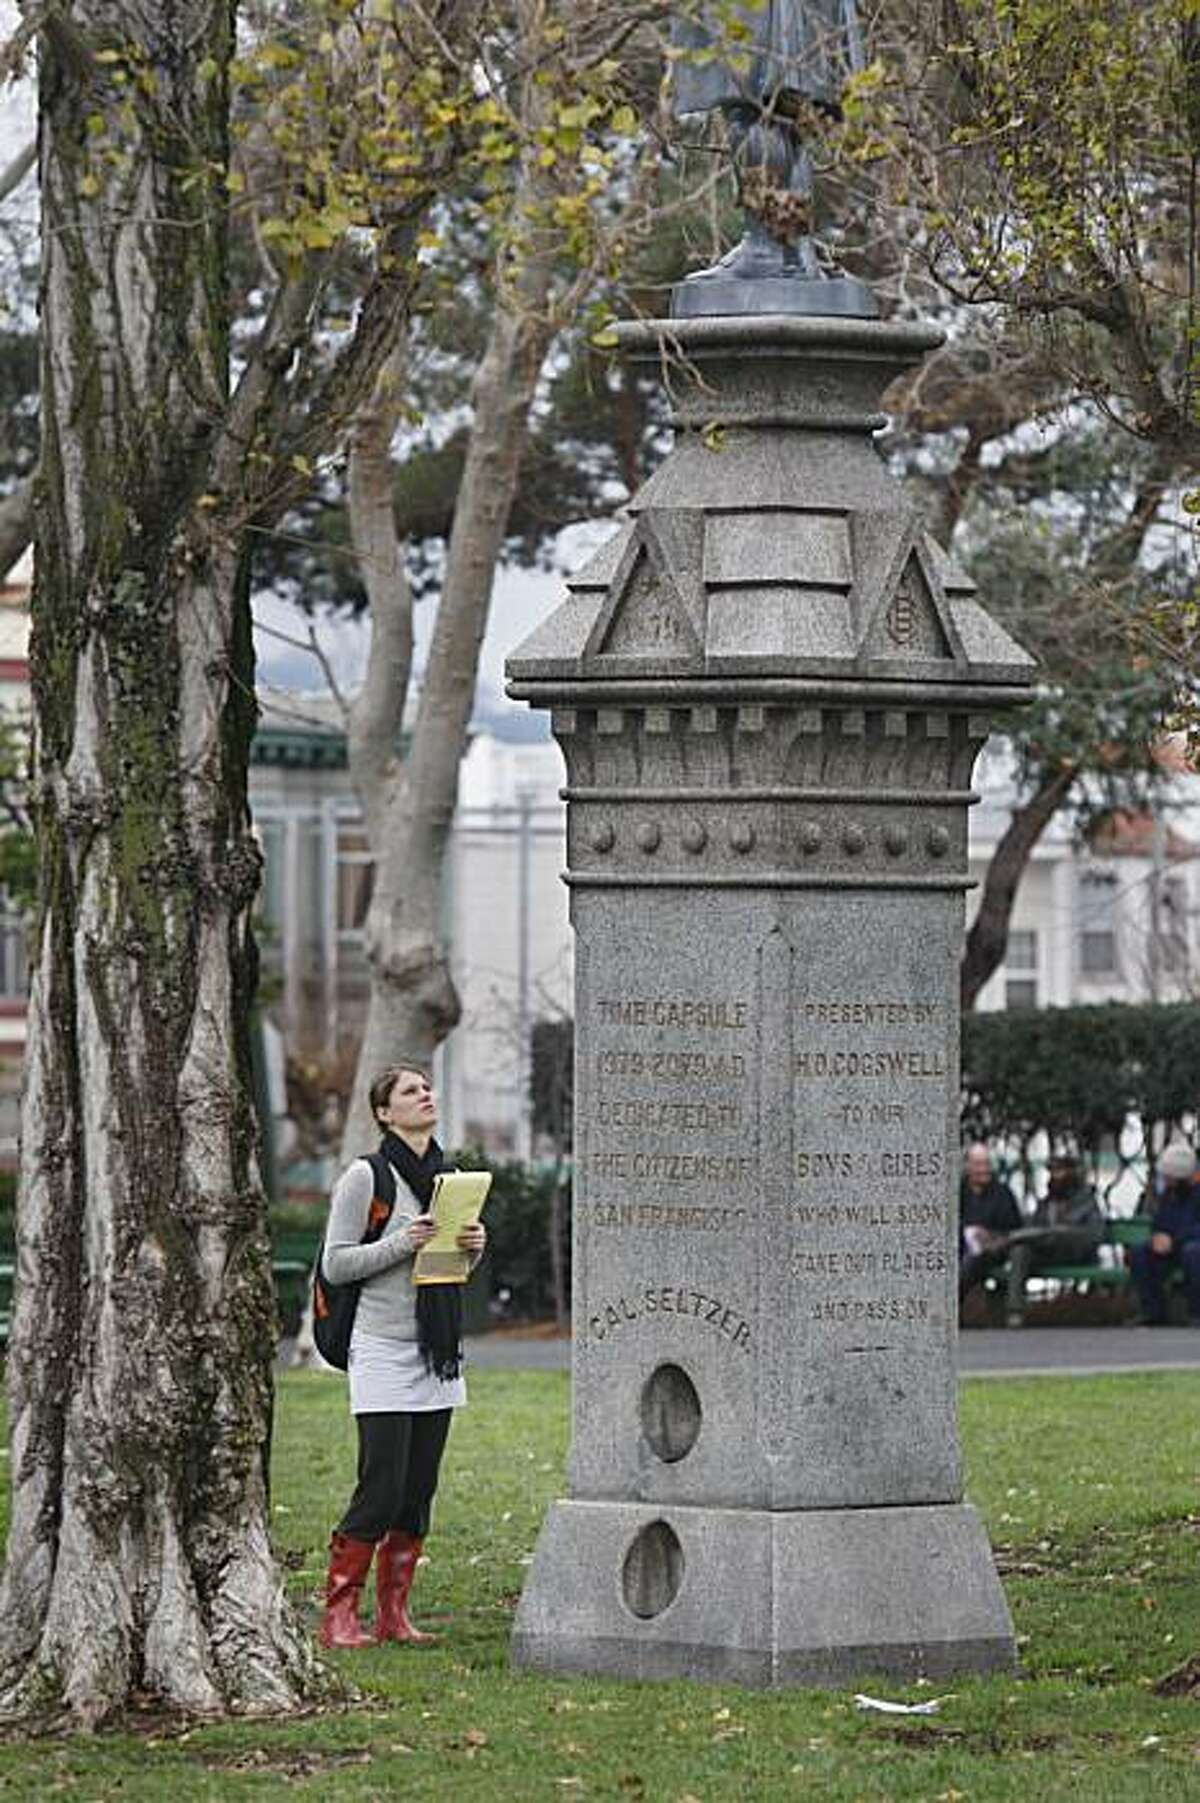 Barbara Nazarewicz, UC Davis landscape architecture student, studies a statue at Washington Square while taking a tour of the park in San Francisco, Calif. on Tuesday, January 12, 2010.